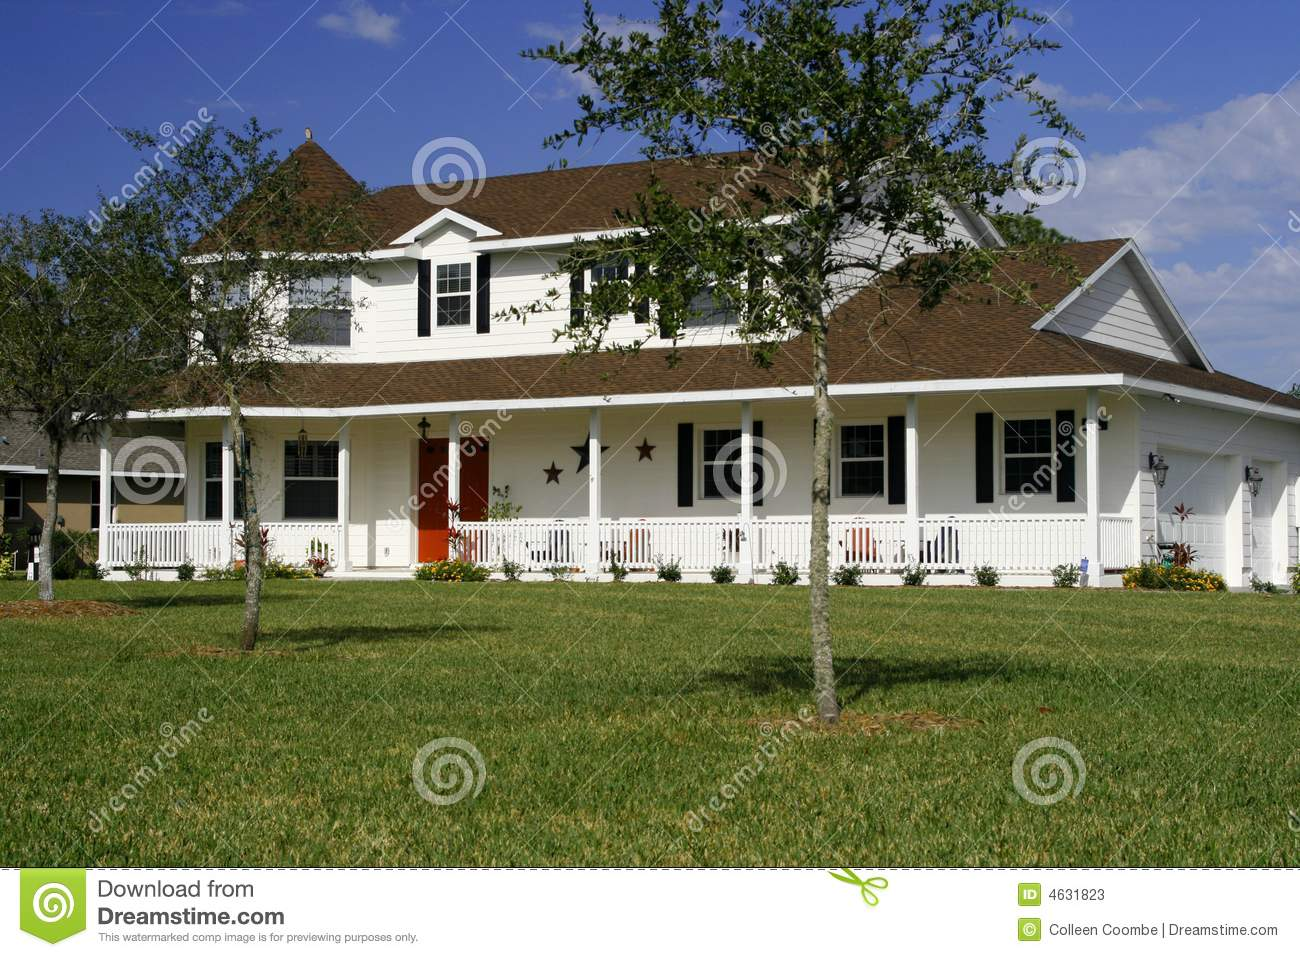 New american style home stock image image of front for American style homes